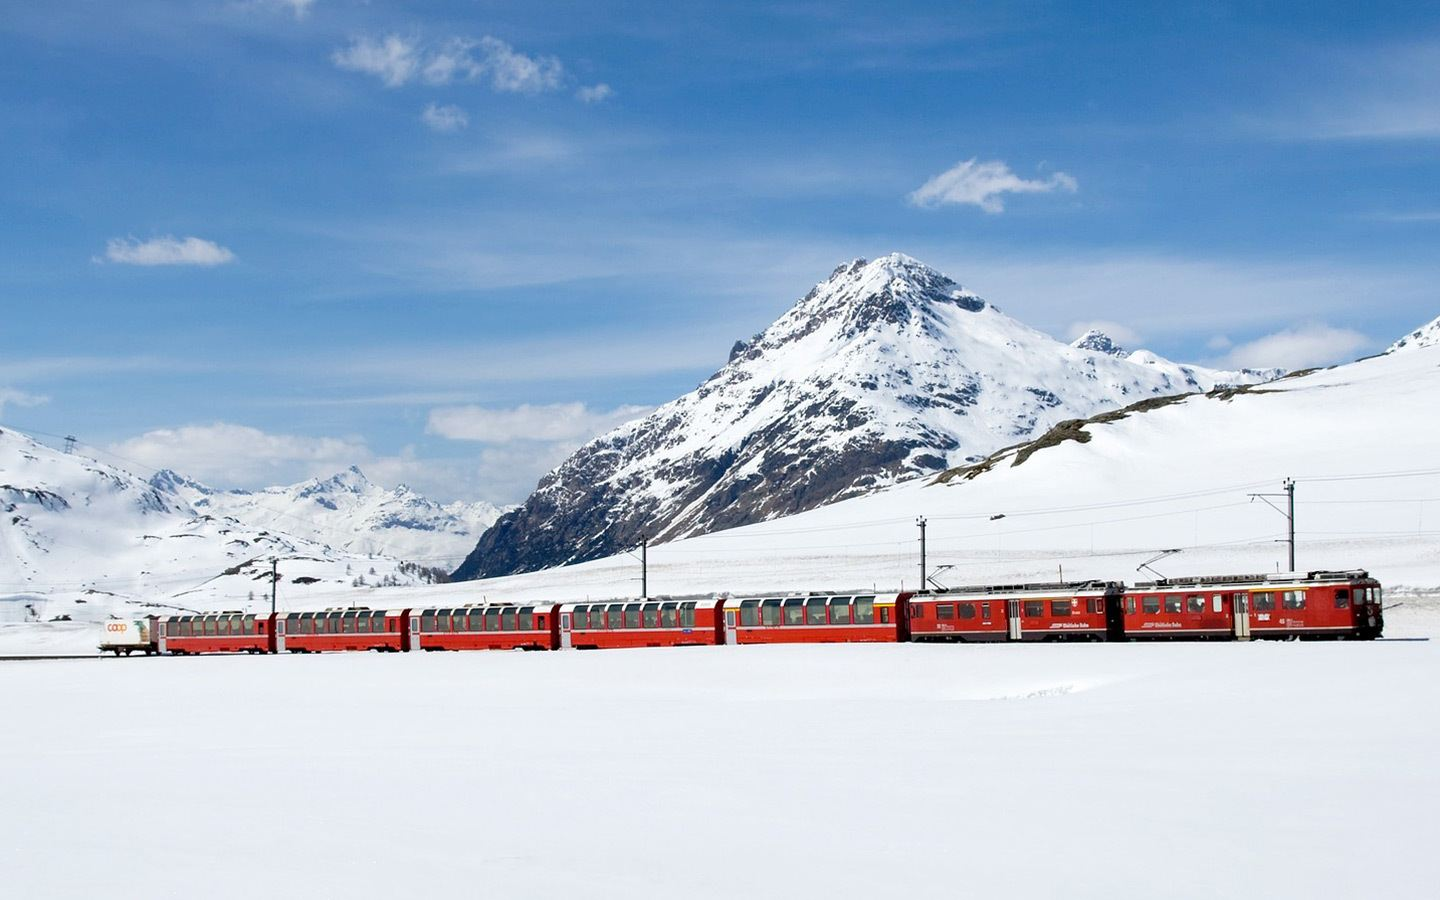 Winter on the Bernina Express scenic train in Switzerland